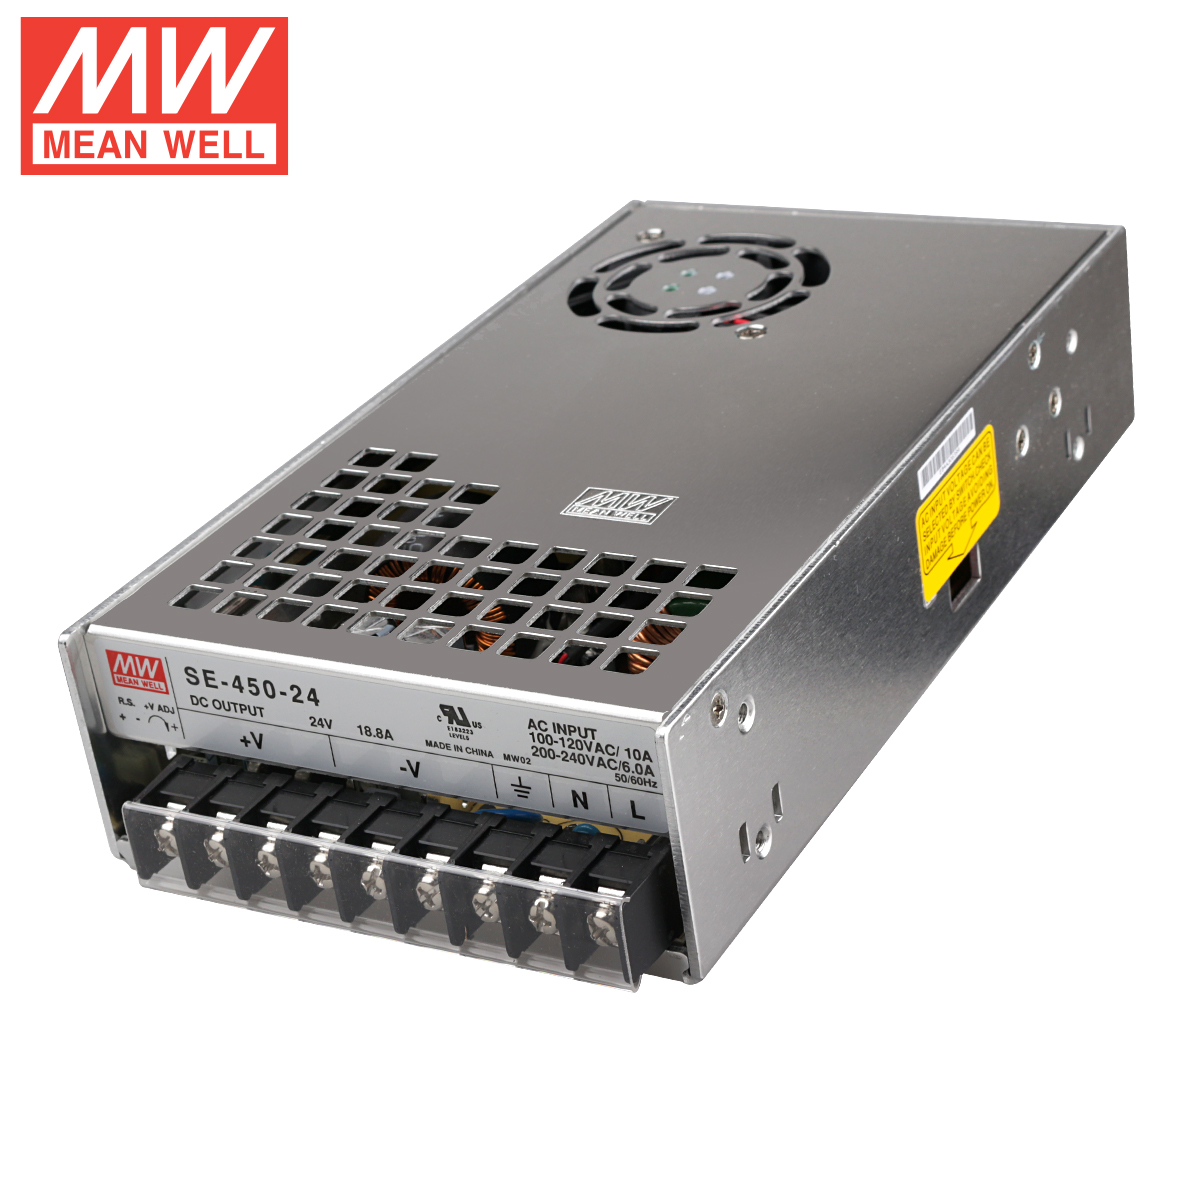 BLV MGN Cube 3d printer good quality power supply Geniune Meanwell PSU SE-450-24 24V18.8A 450W